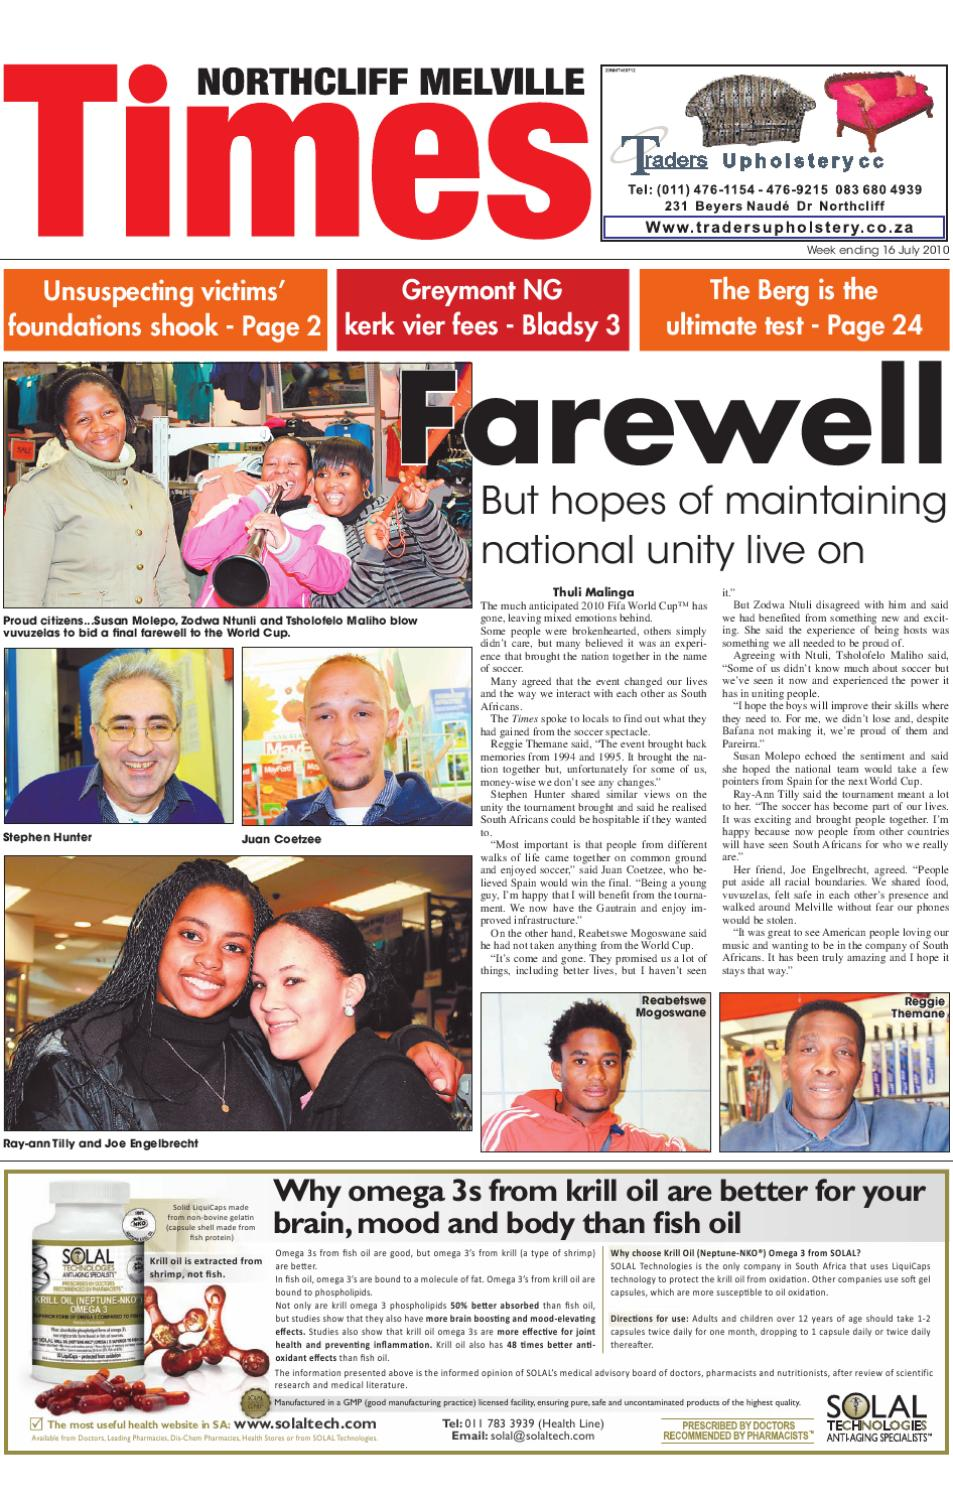 Published every Tuesday, Melville Times is dedicated to serving the local community by providing quality local news and business information. The readers love their local culture and arts, so the Melville Times Lifestyle section serves up food reviews, movies, event listings and more.